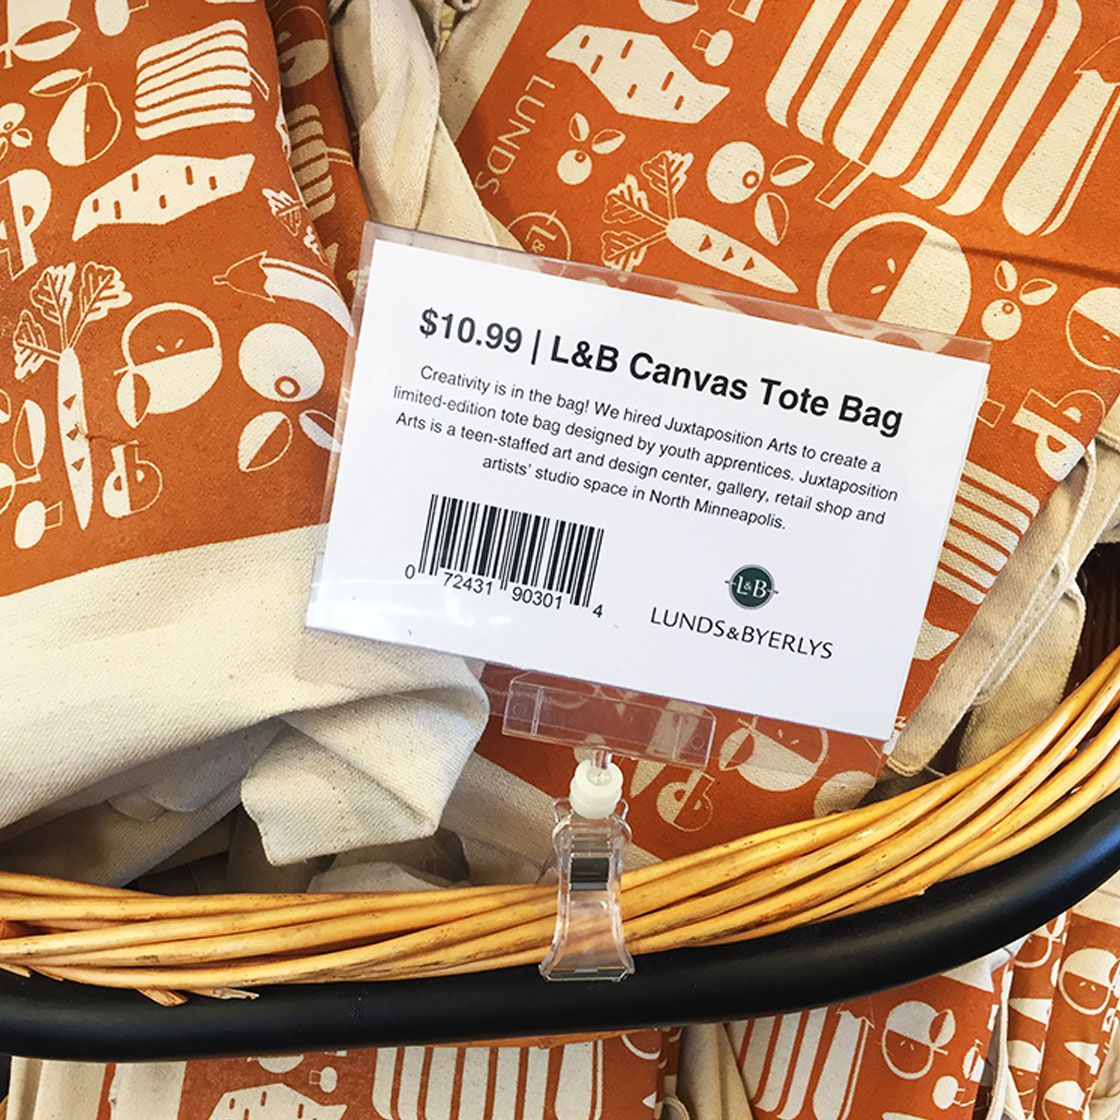 A basket with screen printed tote bags